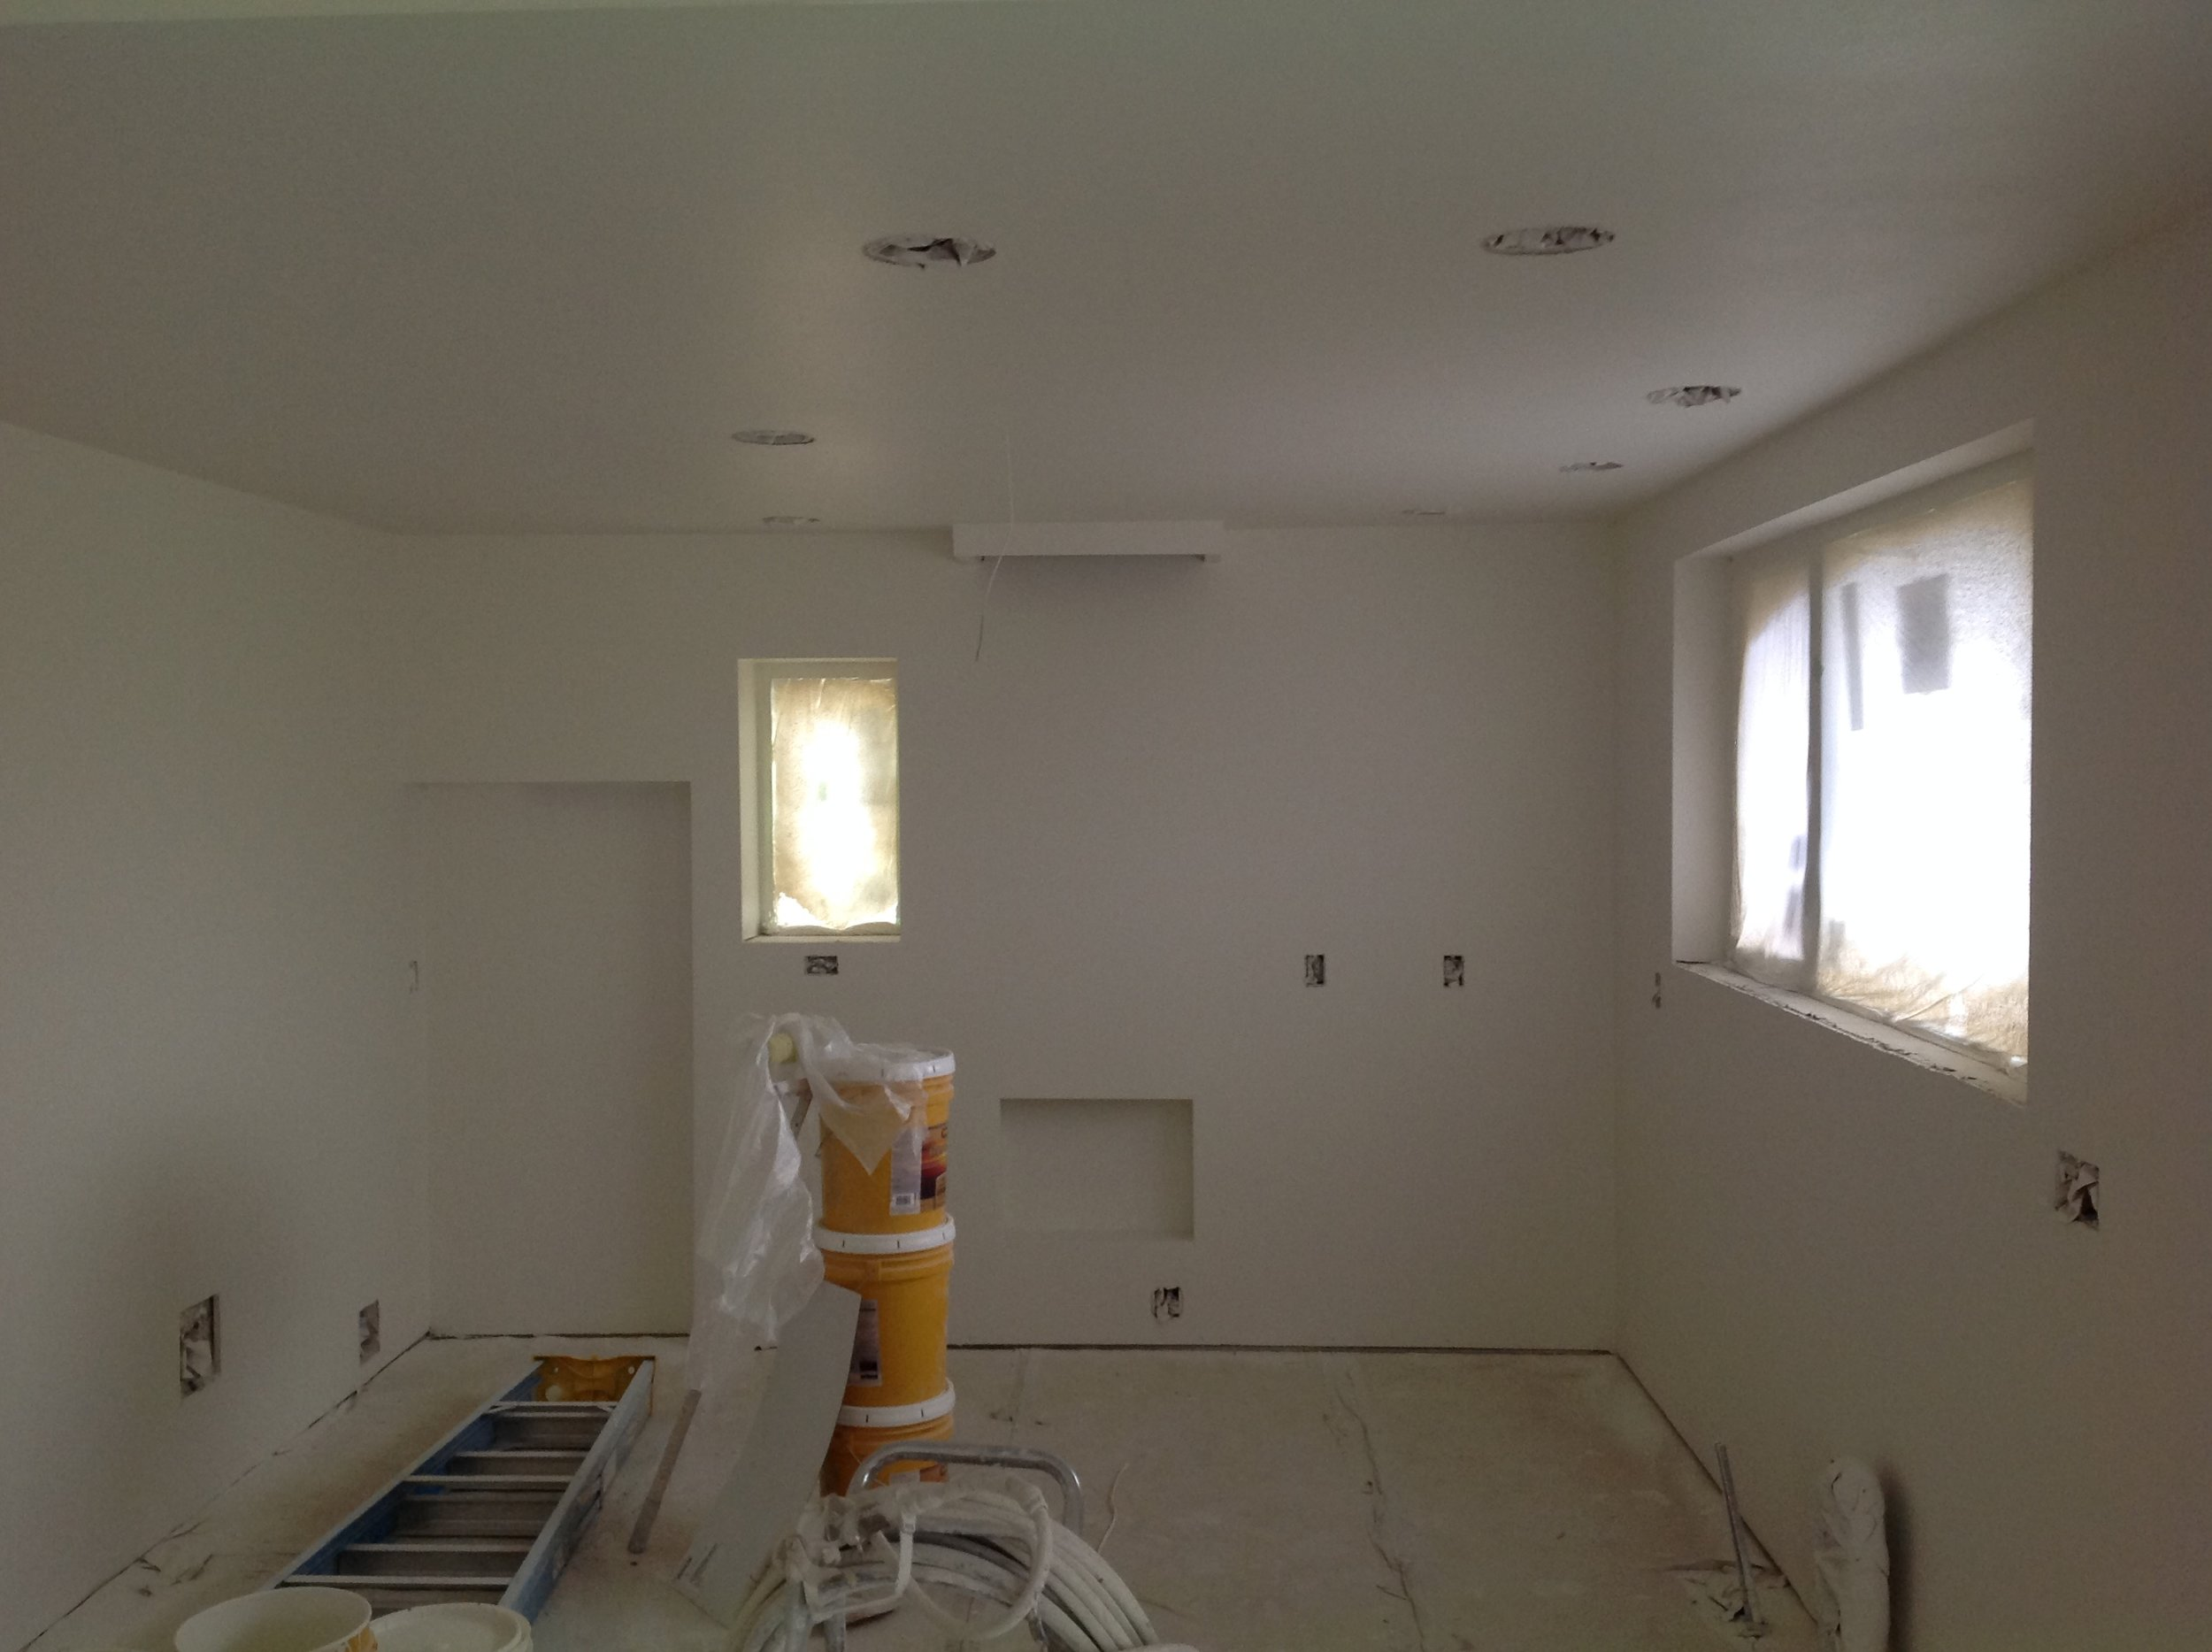 The kitchen is now textured and painted with zero-VOC paint.